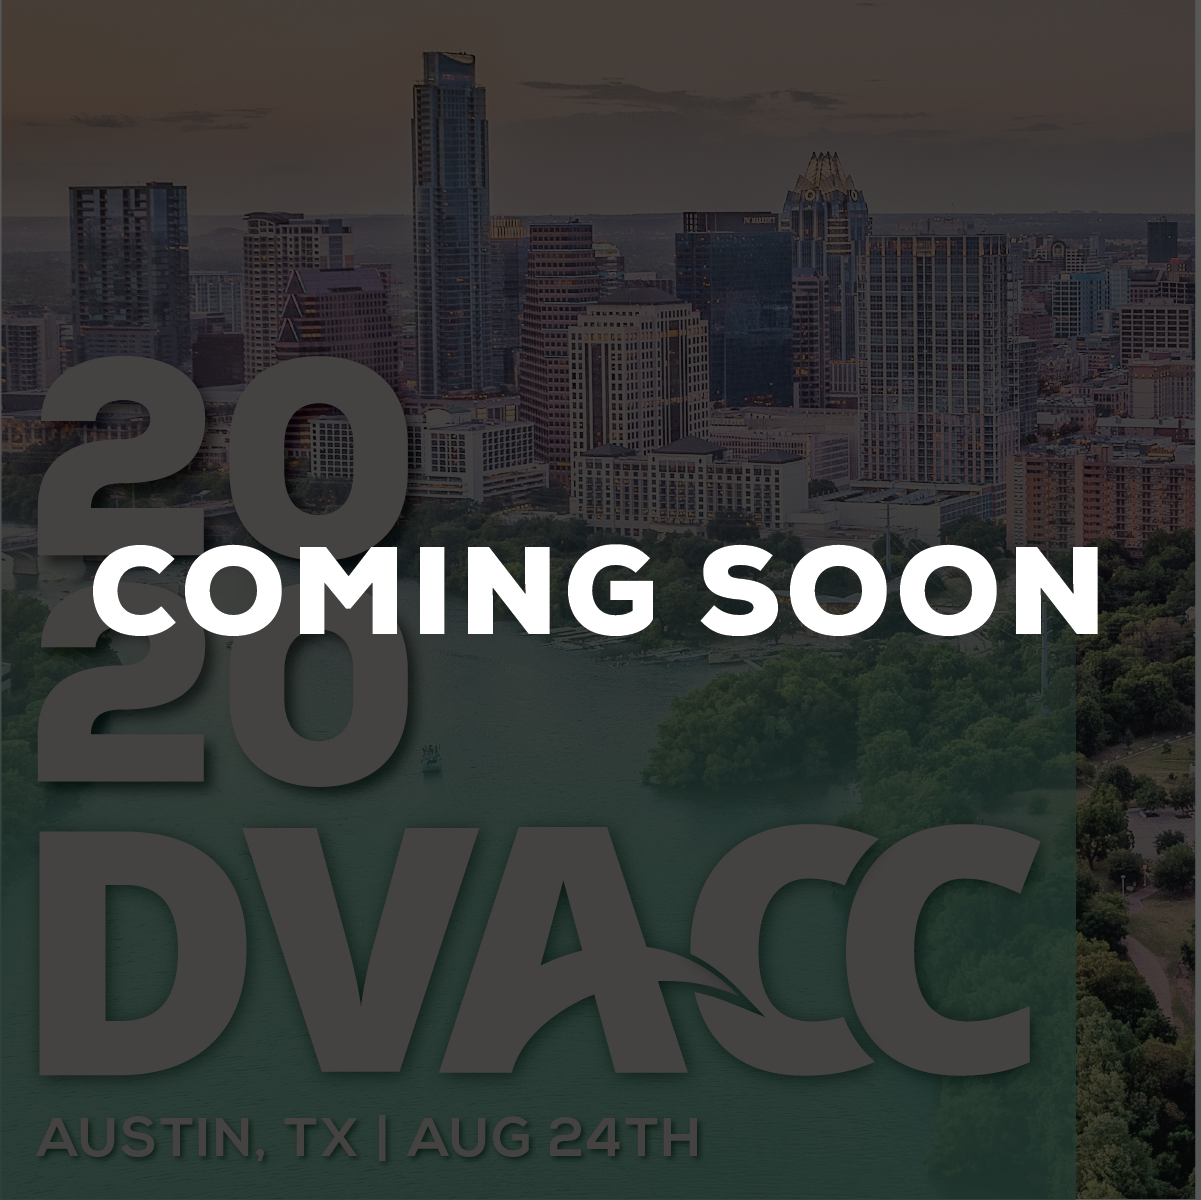 DVACC coming soon website-02